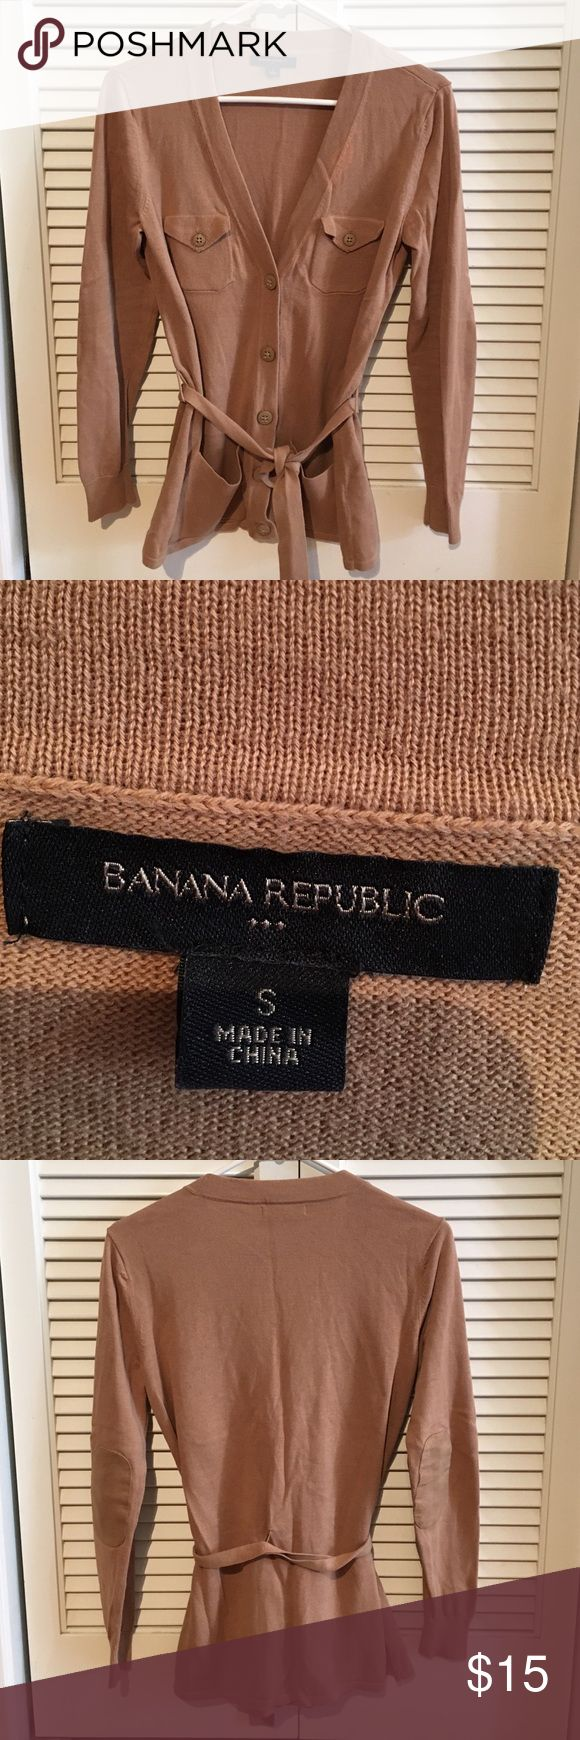 Banana Republic Camel cardigan with belt Great sweater in great condition except for small bleach stain on front collar Banana Republic Sweaters Cardigans